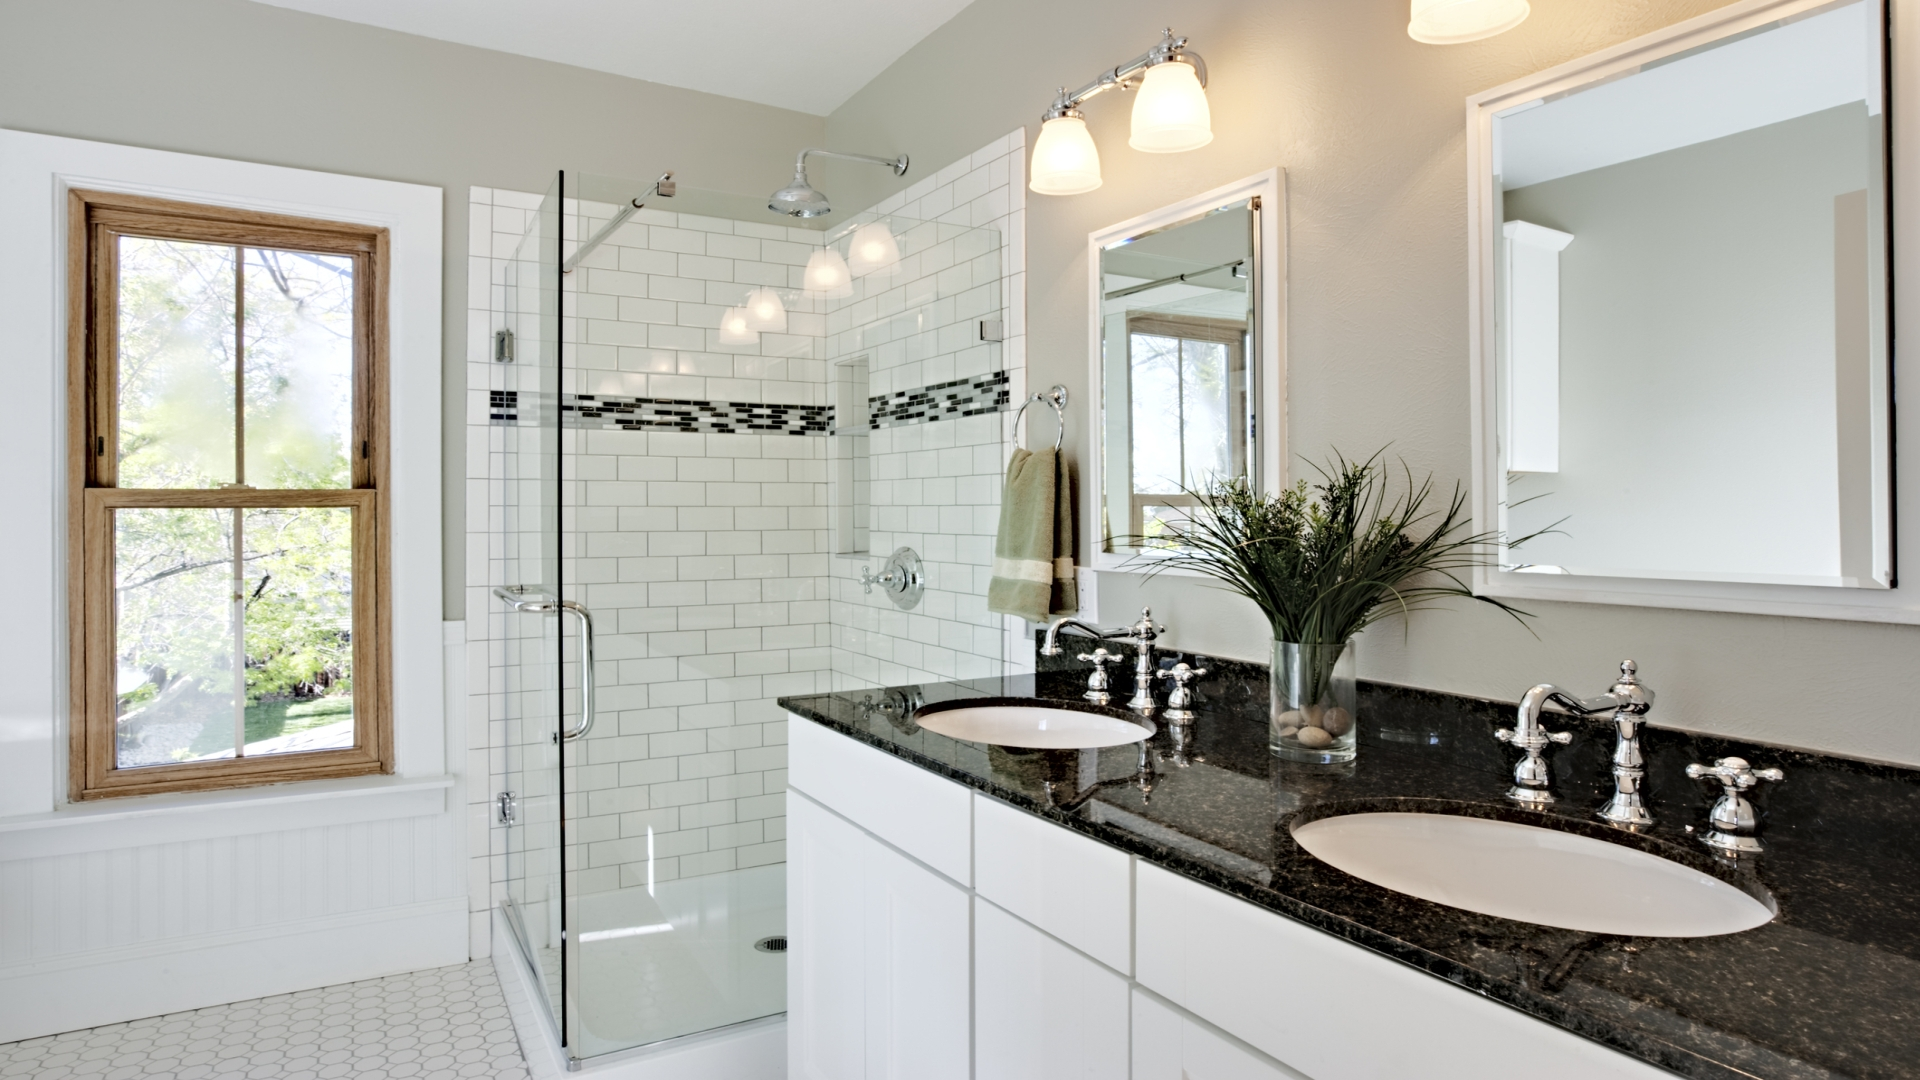 Bathroom Remodeling Bradenton Schrader Home Improvement - Bathroom remodeling lakewood